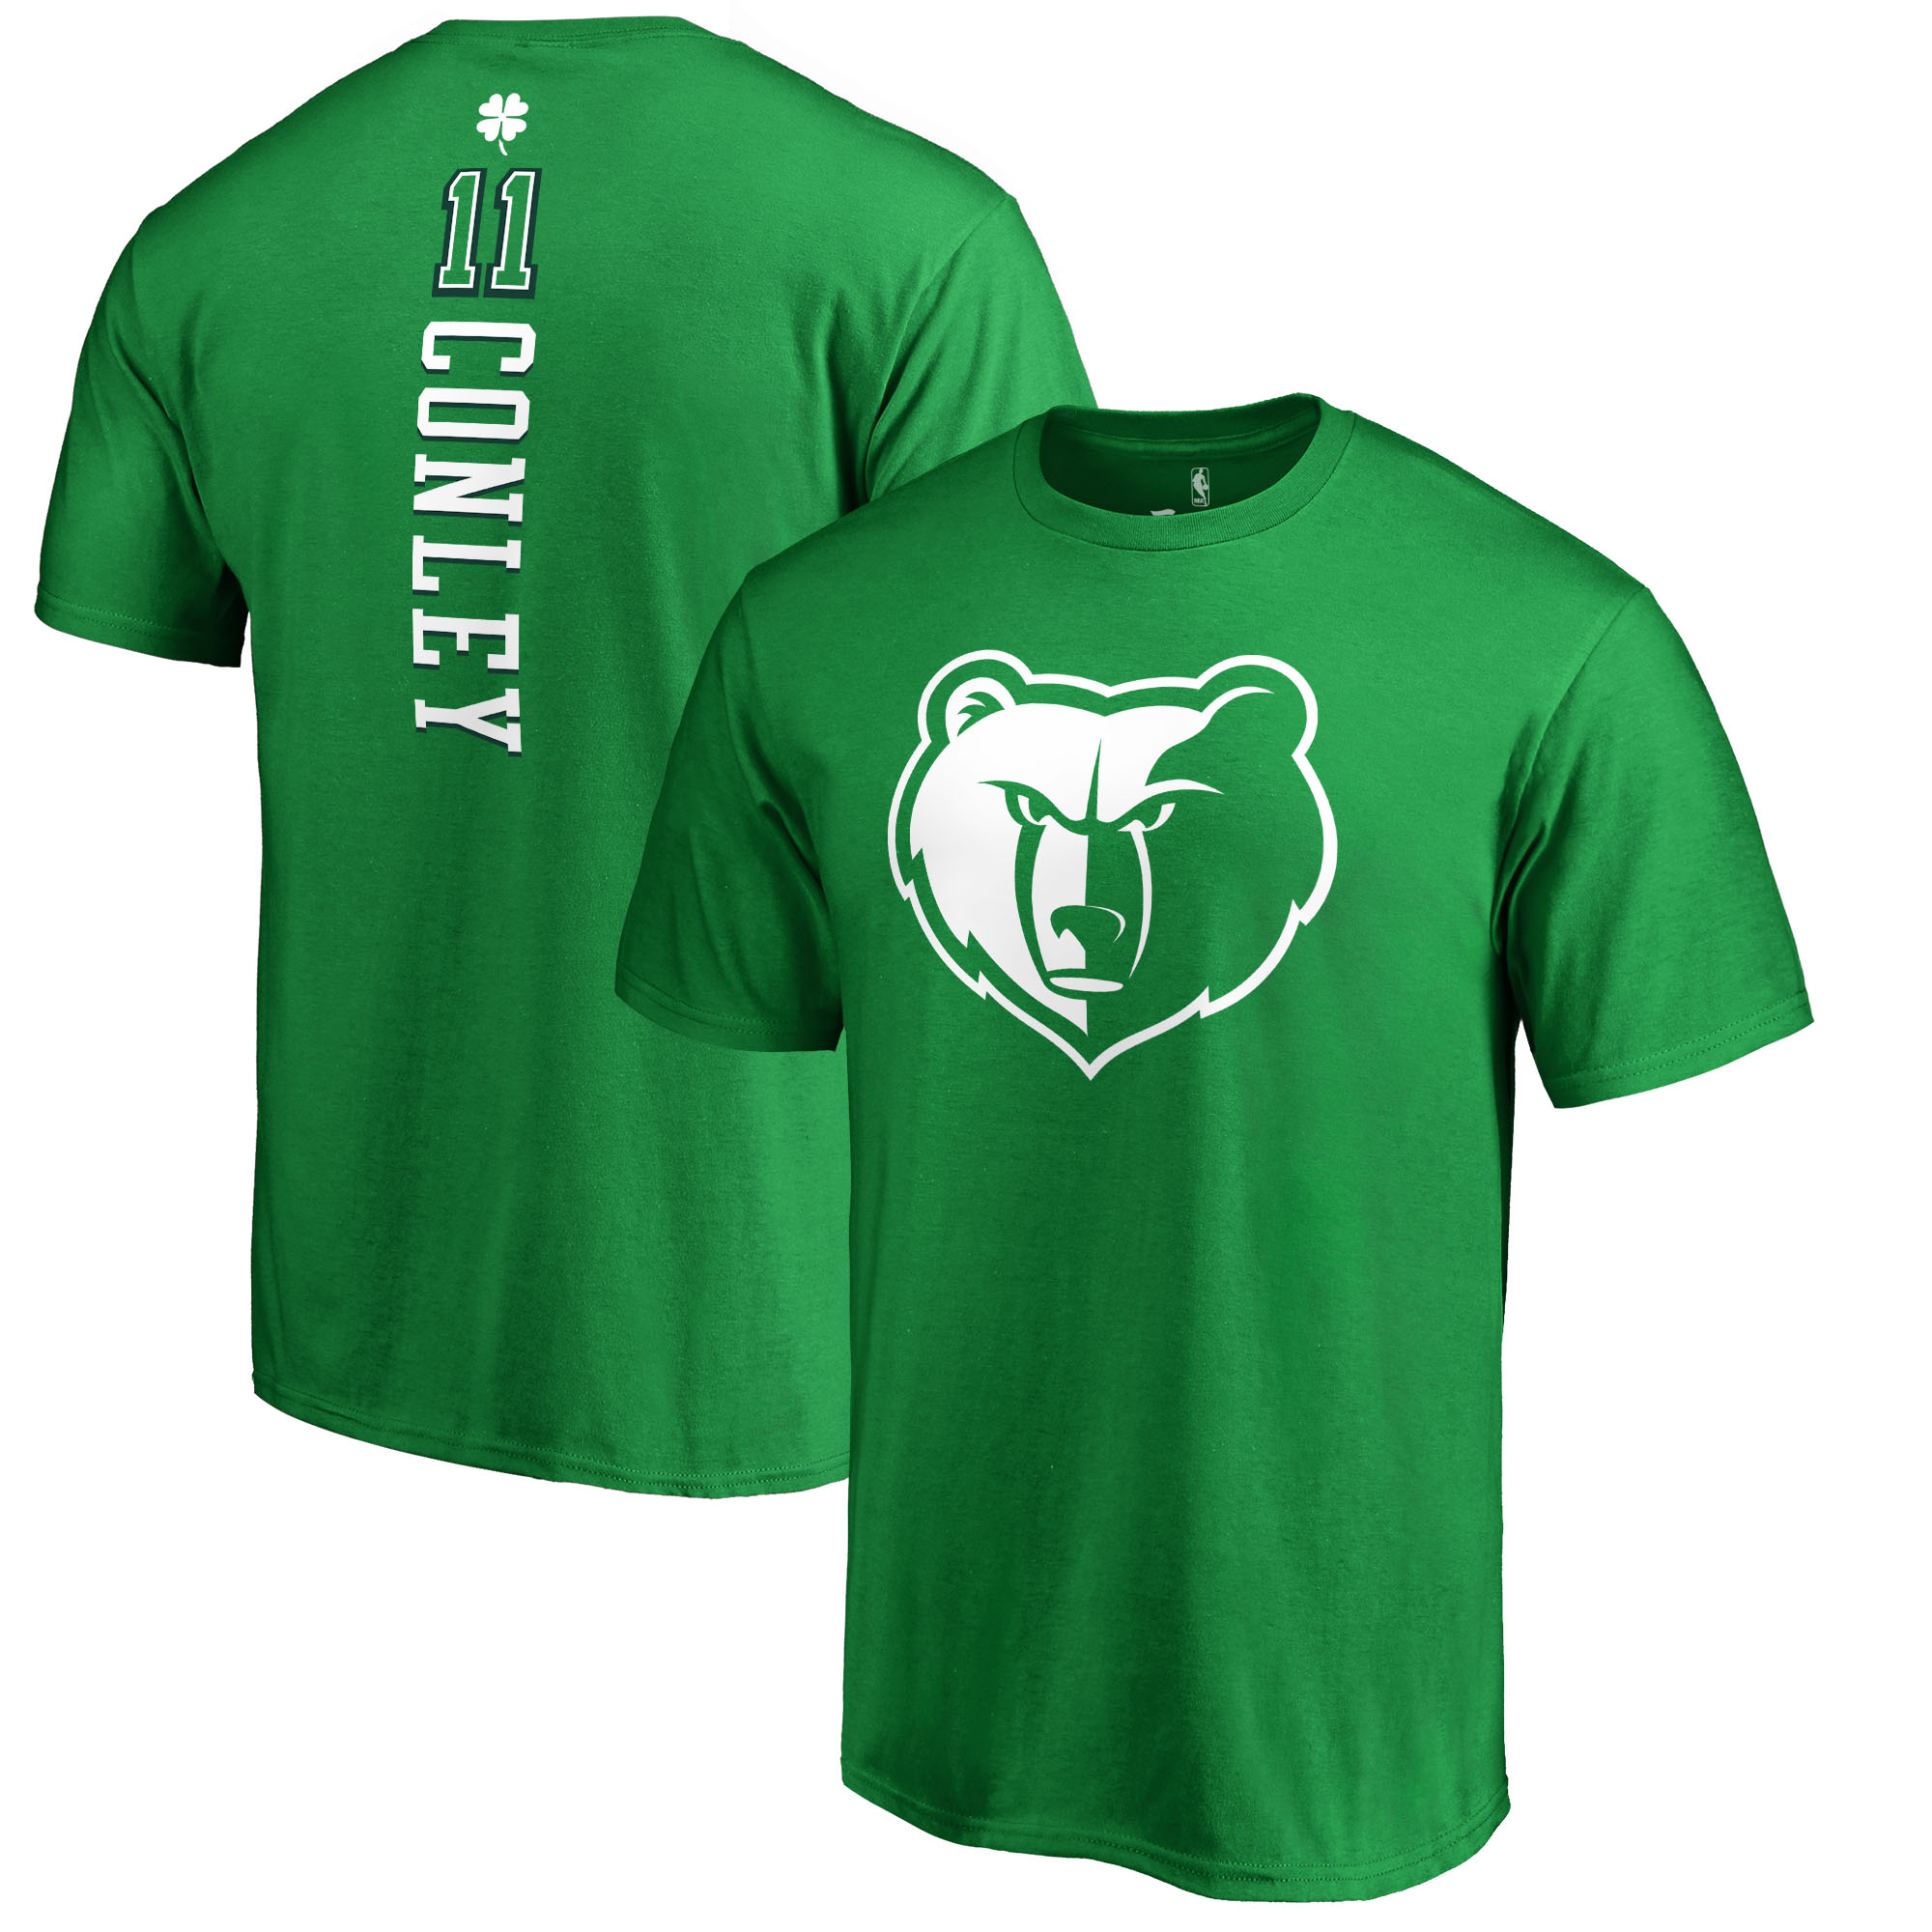 Memphis Grizzlies Fanatics Branded St. Patrick's Day Backer Name & Number Mike Conley T-Shirt - Kelly Green